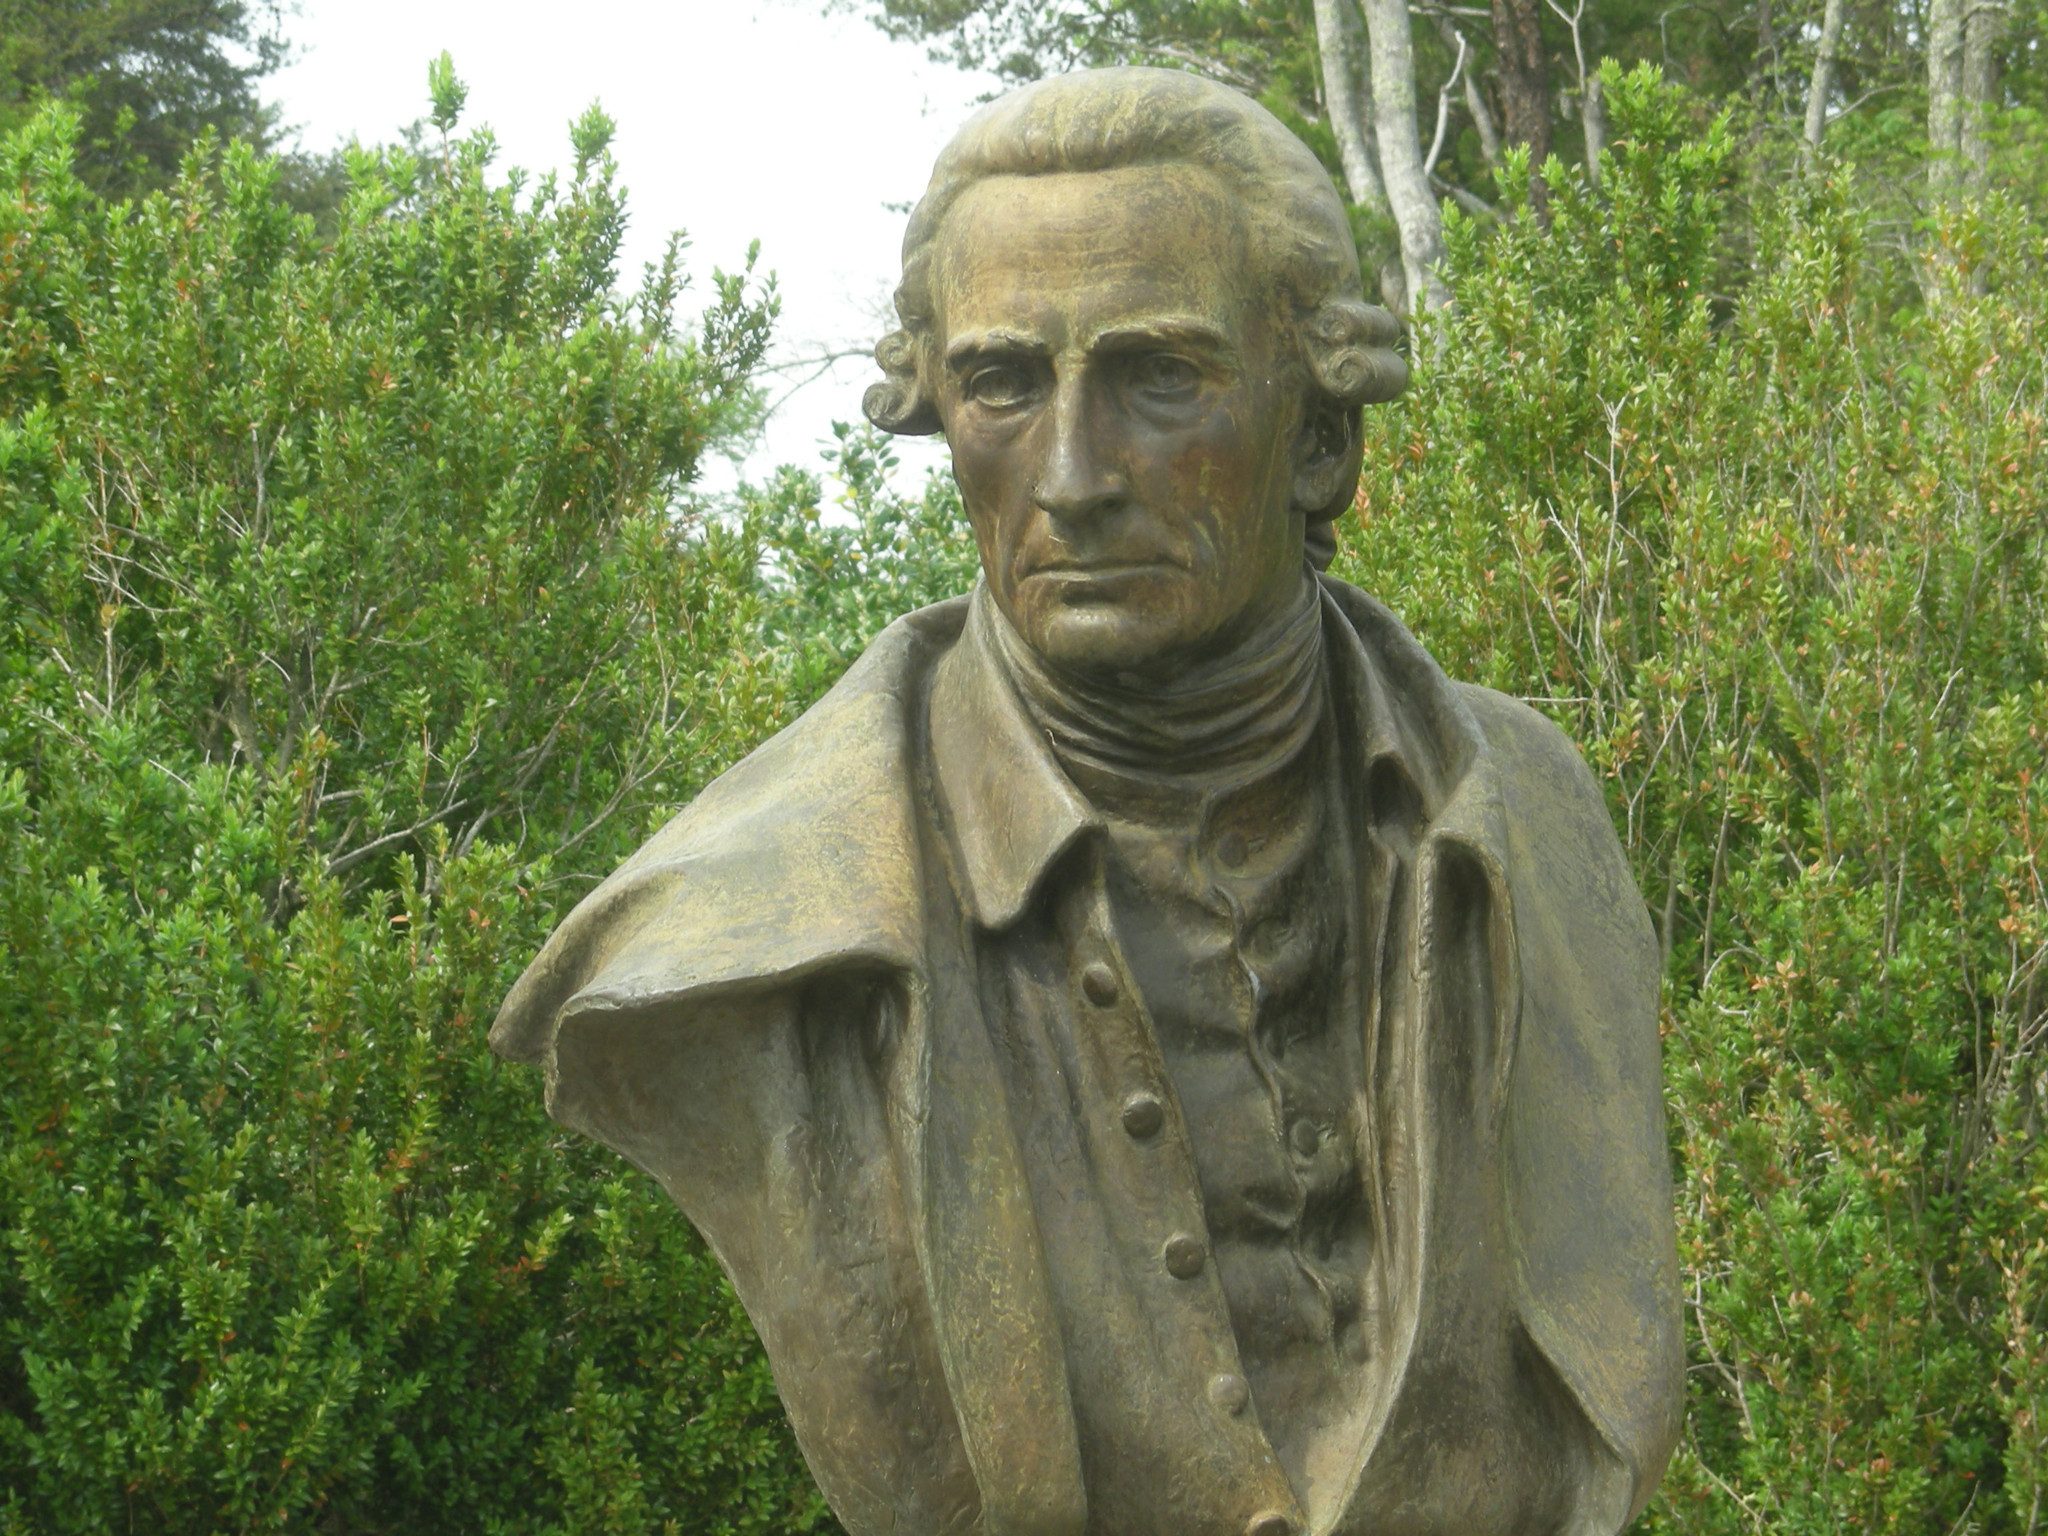 patrick henry speech his perspective journal entries Patrick henry, march 23, 1775 no man thinks more highly than i do of the patriotism, as well as abilities, of the very worthy gentlemen who have just addressed the house.